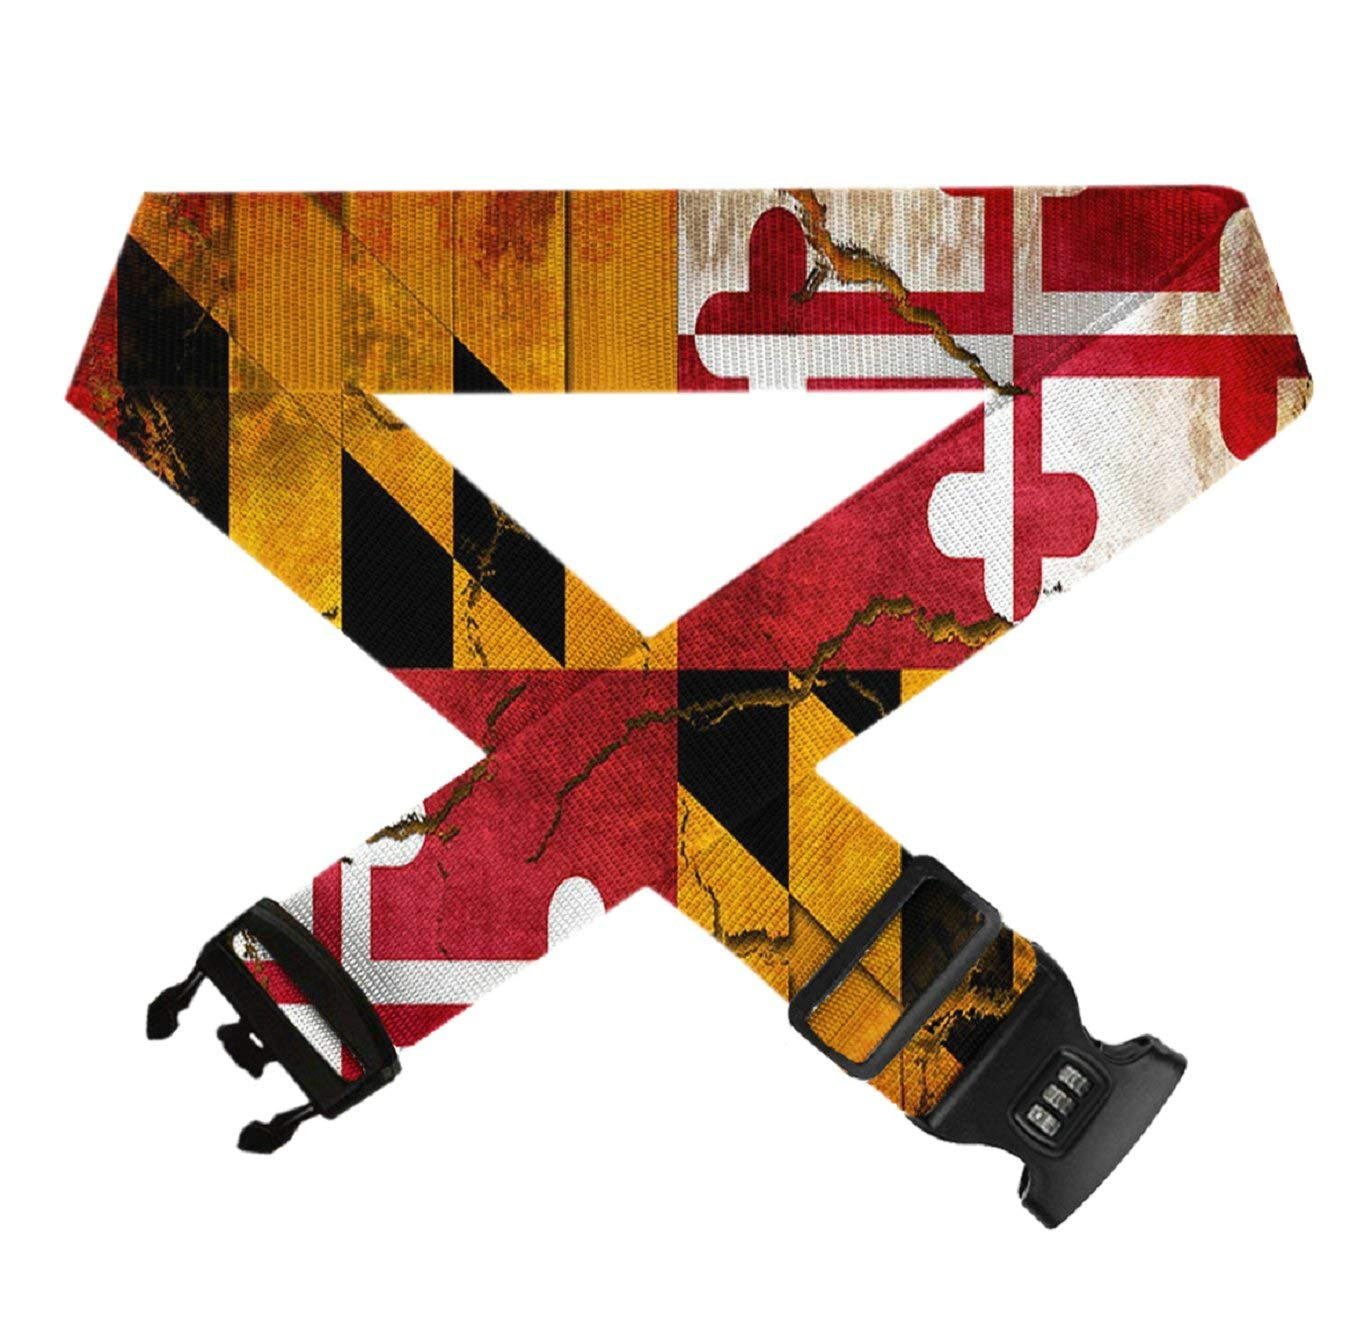 Adjustable Add-A-Bag Luggage Strap,1 PC Baggage Suitcase Straps Belts TSA Approved Lock Travel Accessories GLORY ART Vintage Wooden Maryland Flag